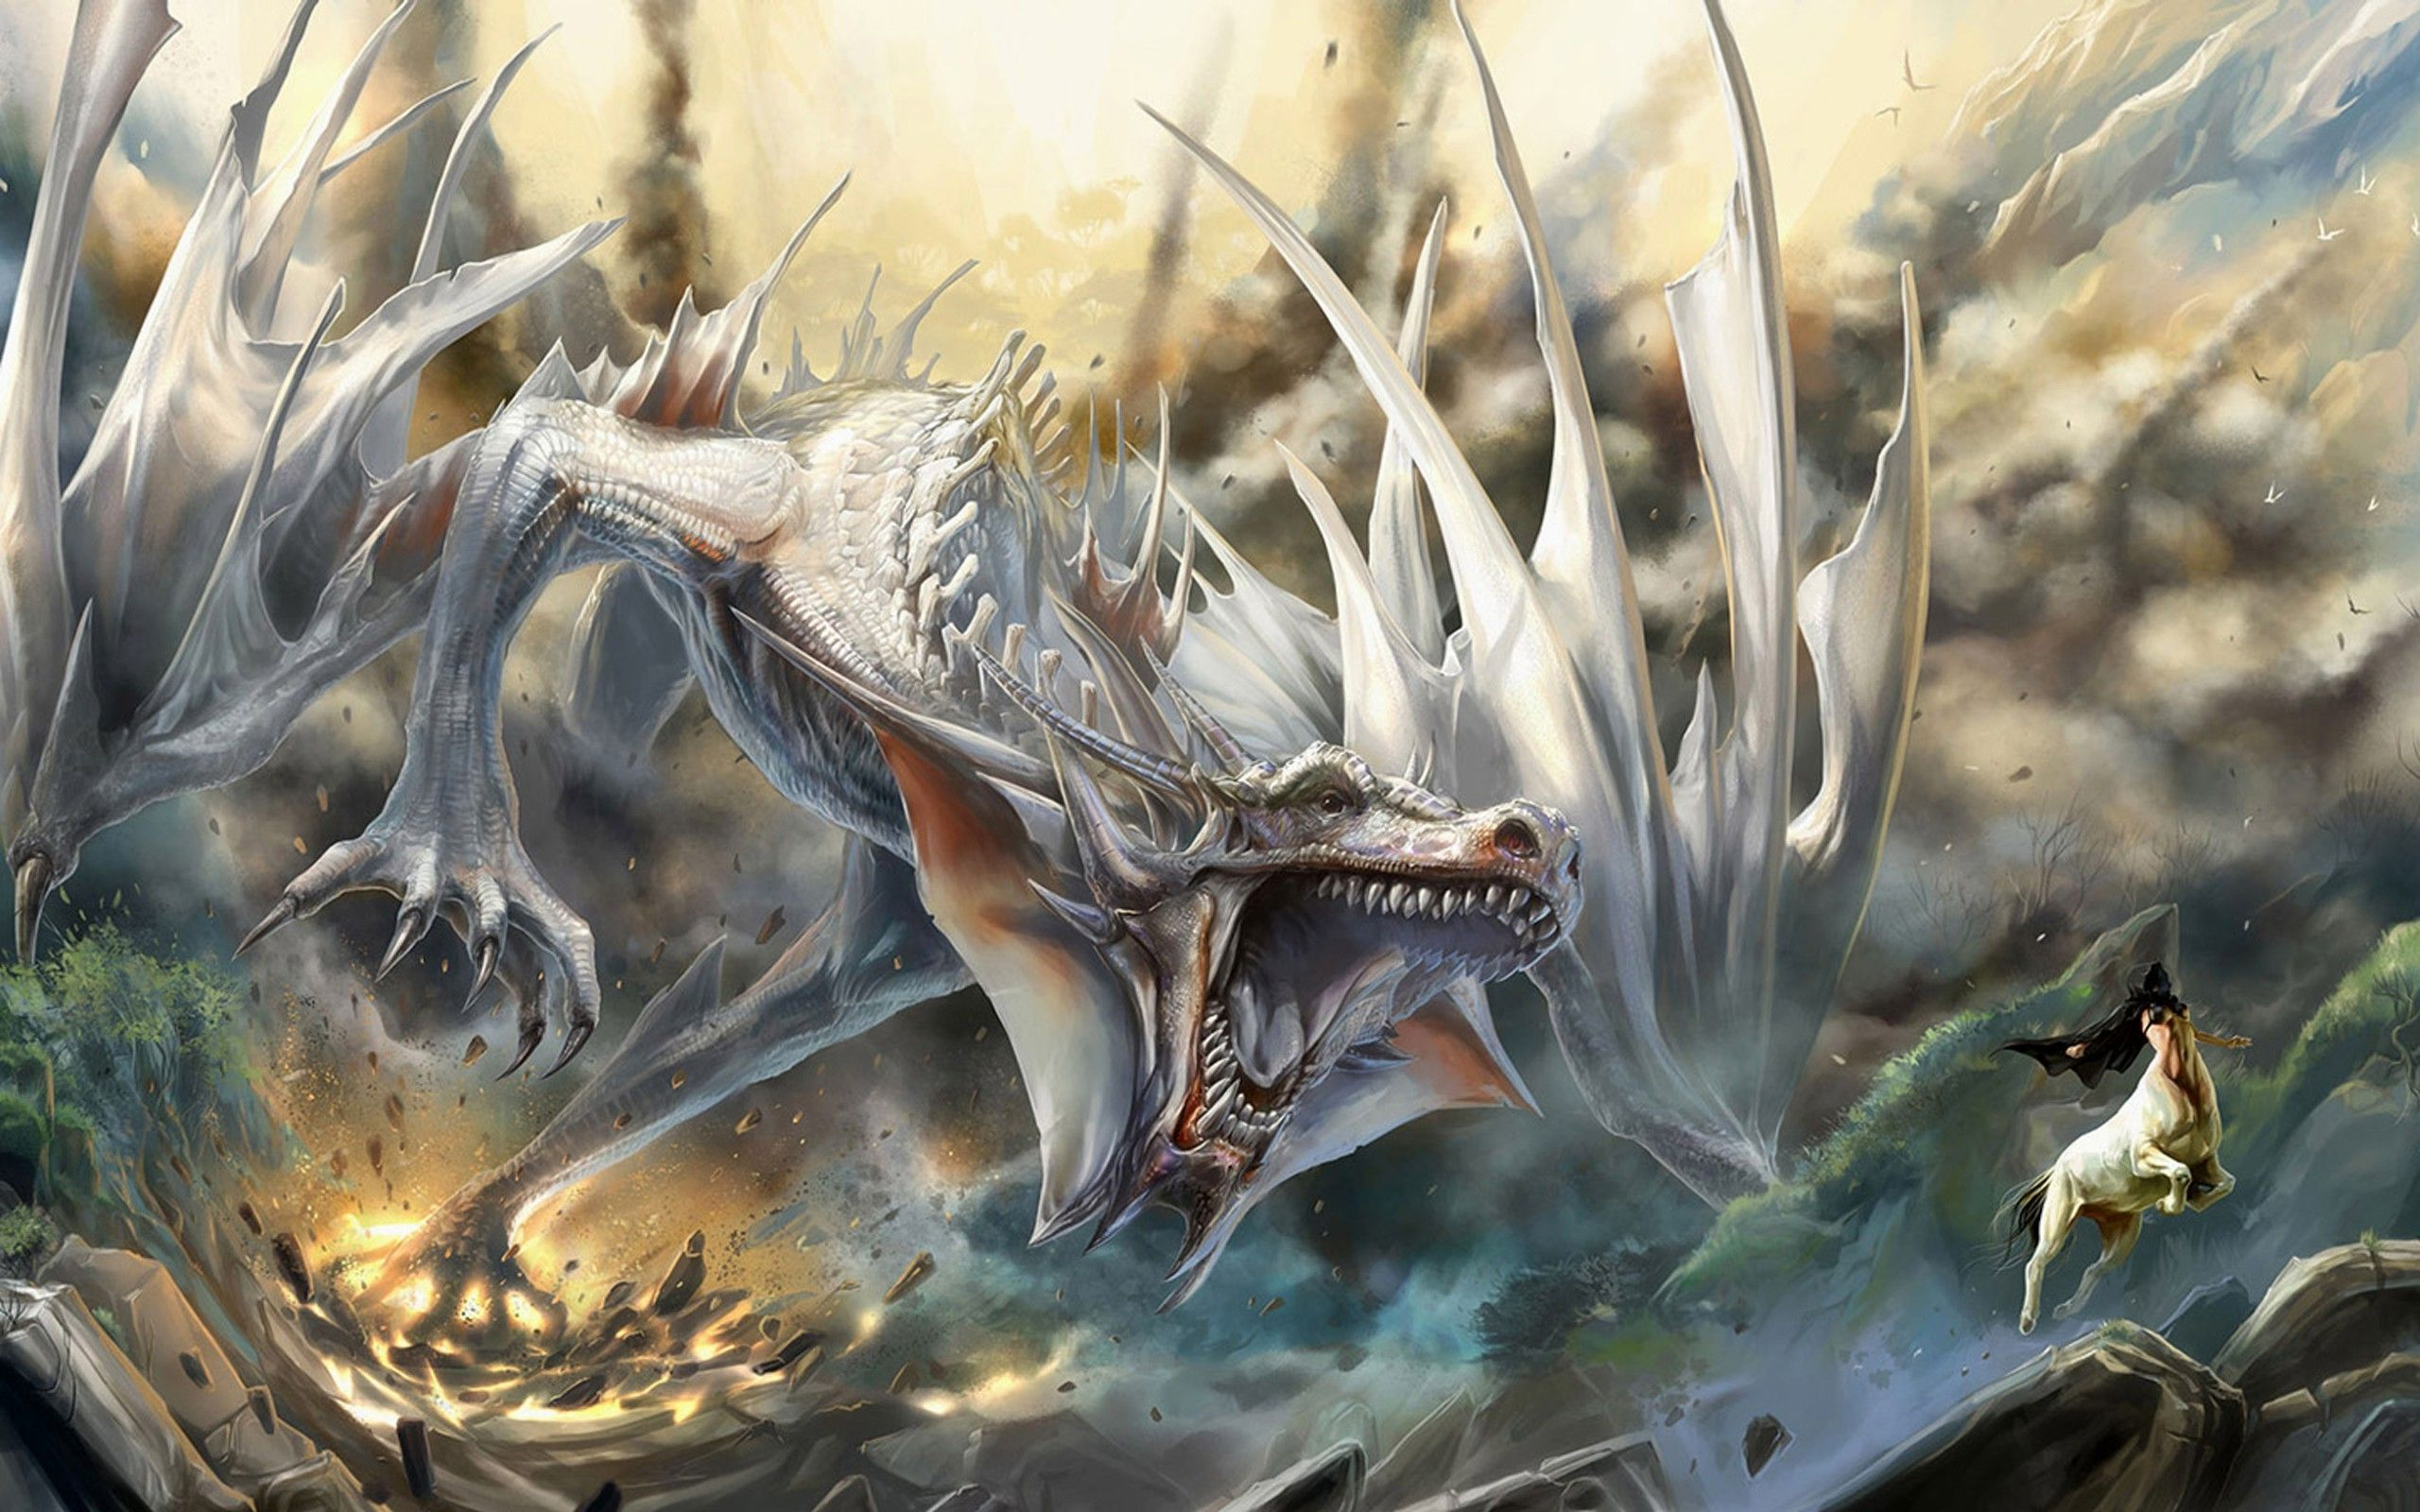 Download Hd Wallpapers Of 178727 Dragon Fantasy Art Free